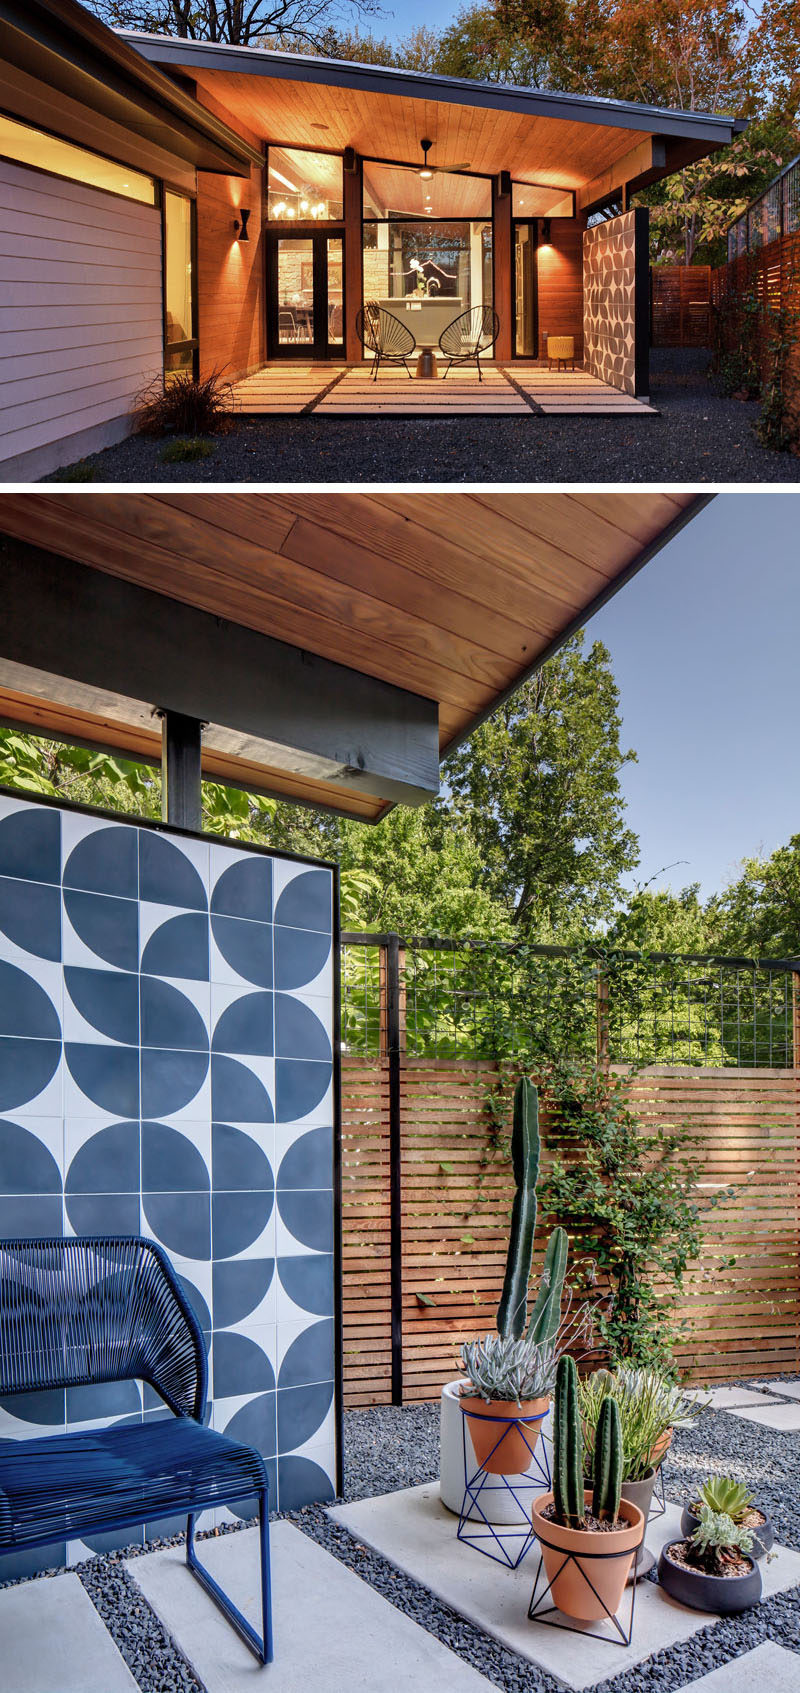 This remodeled mid-century modern house has a small covered patio off the kitchen, that features the same tiles as the kitchen backsplash. #Patio #OutdoorSpace